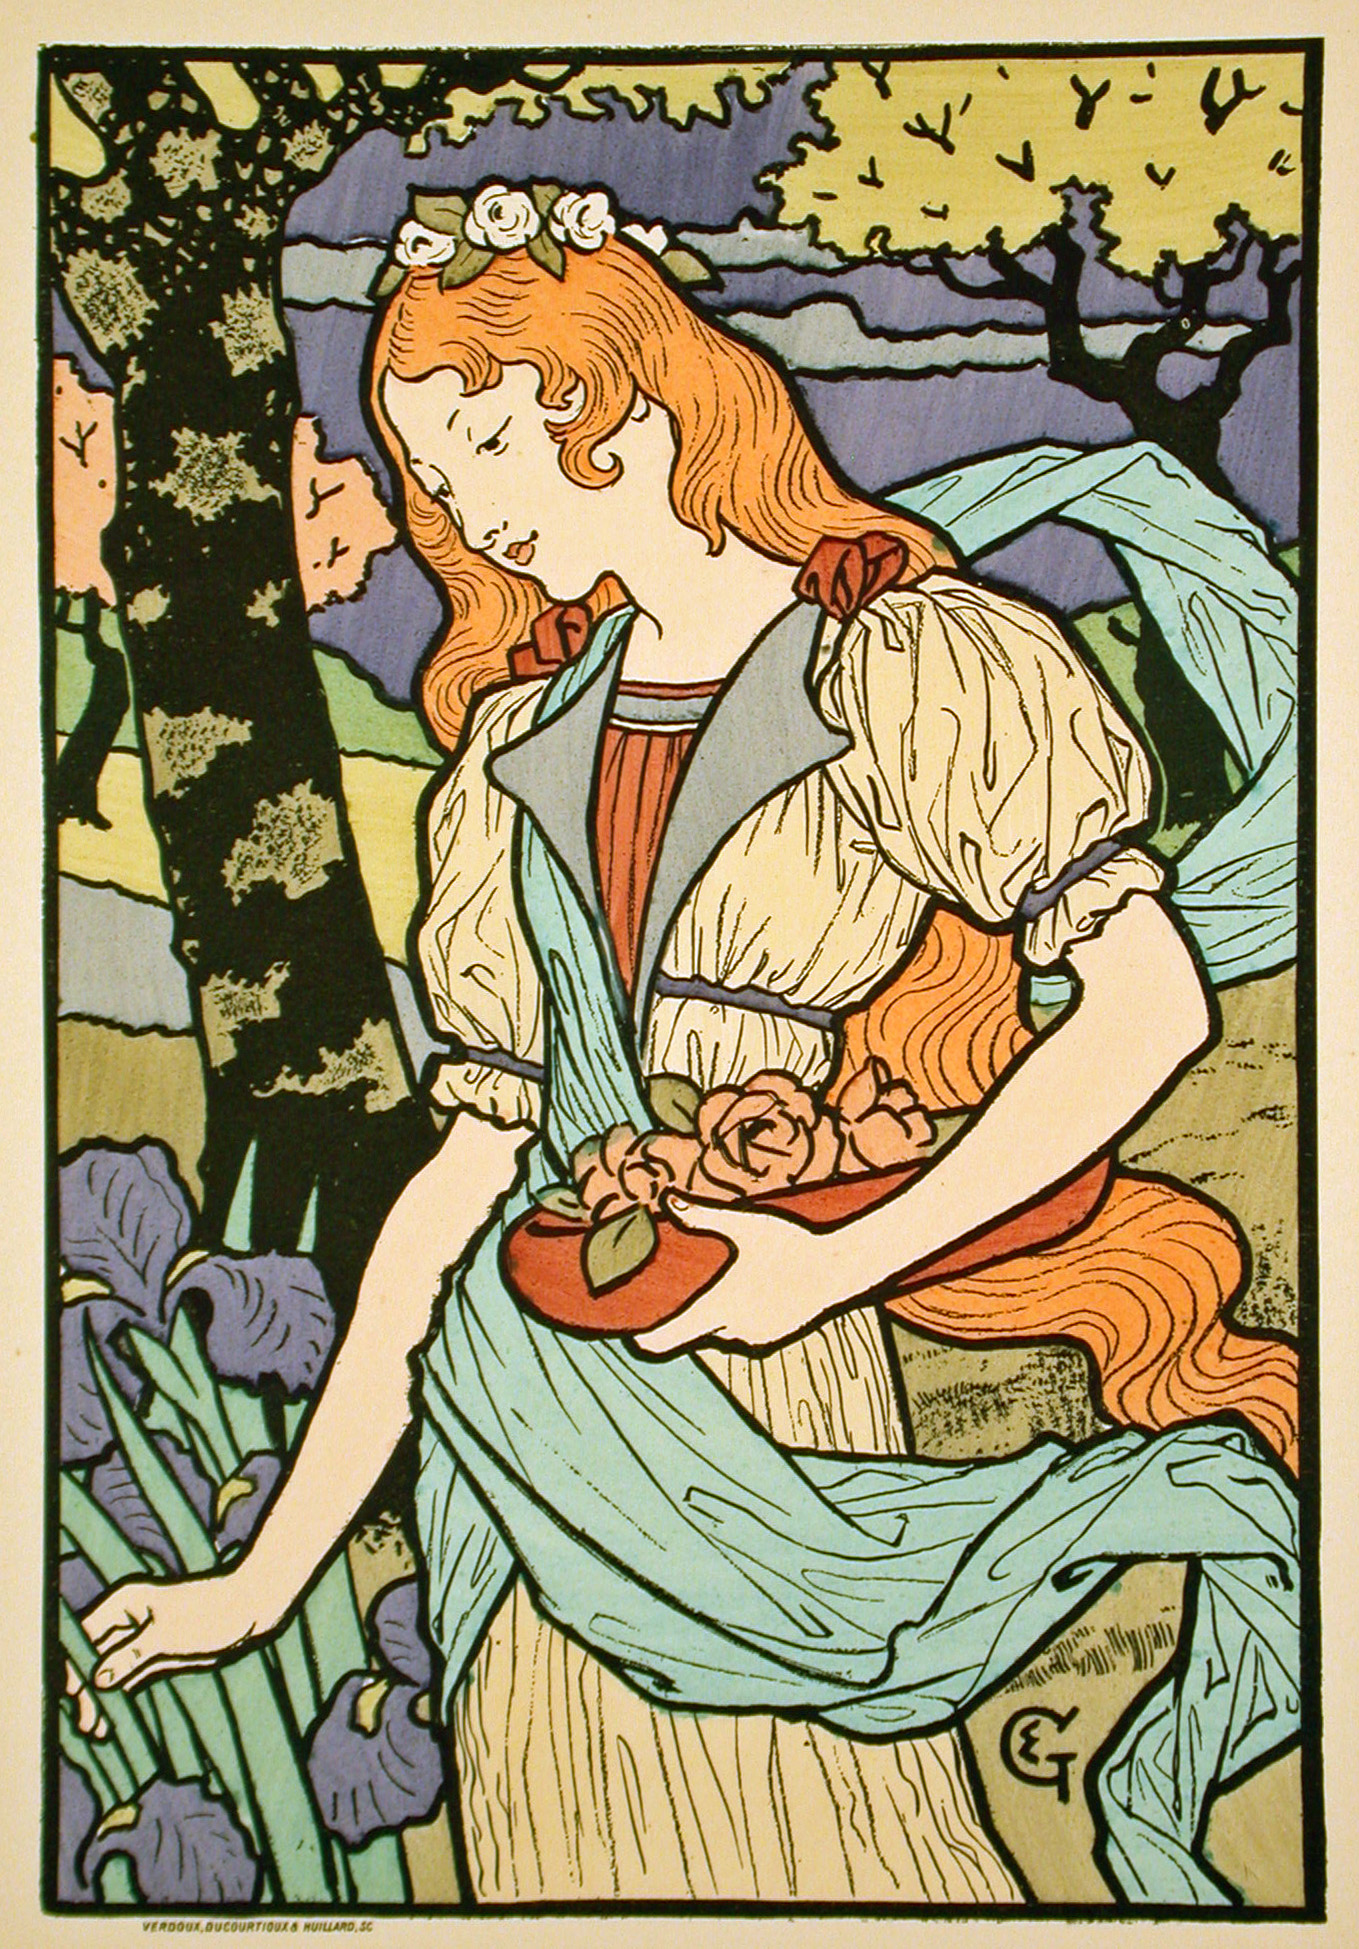 Poster design wikipedia - Eug Ne Samuel Grasset Poster For An Exhibition Of French Decorative Art At The Grafton Galleries 1893